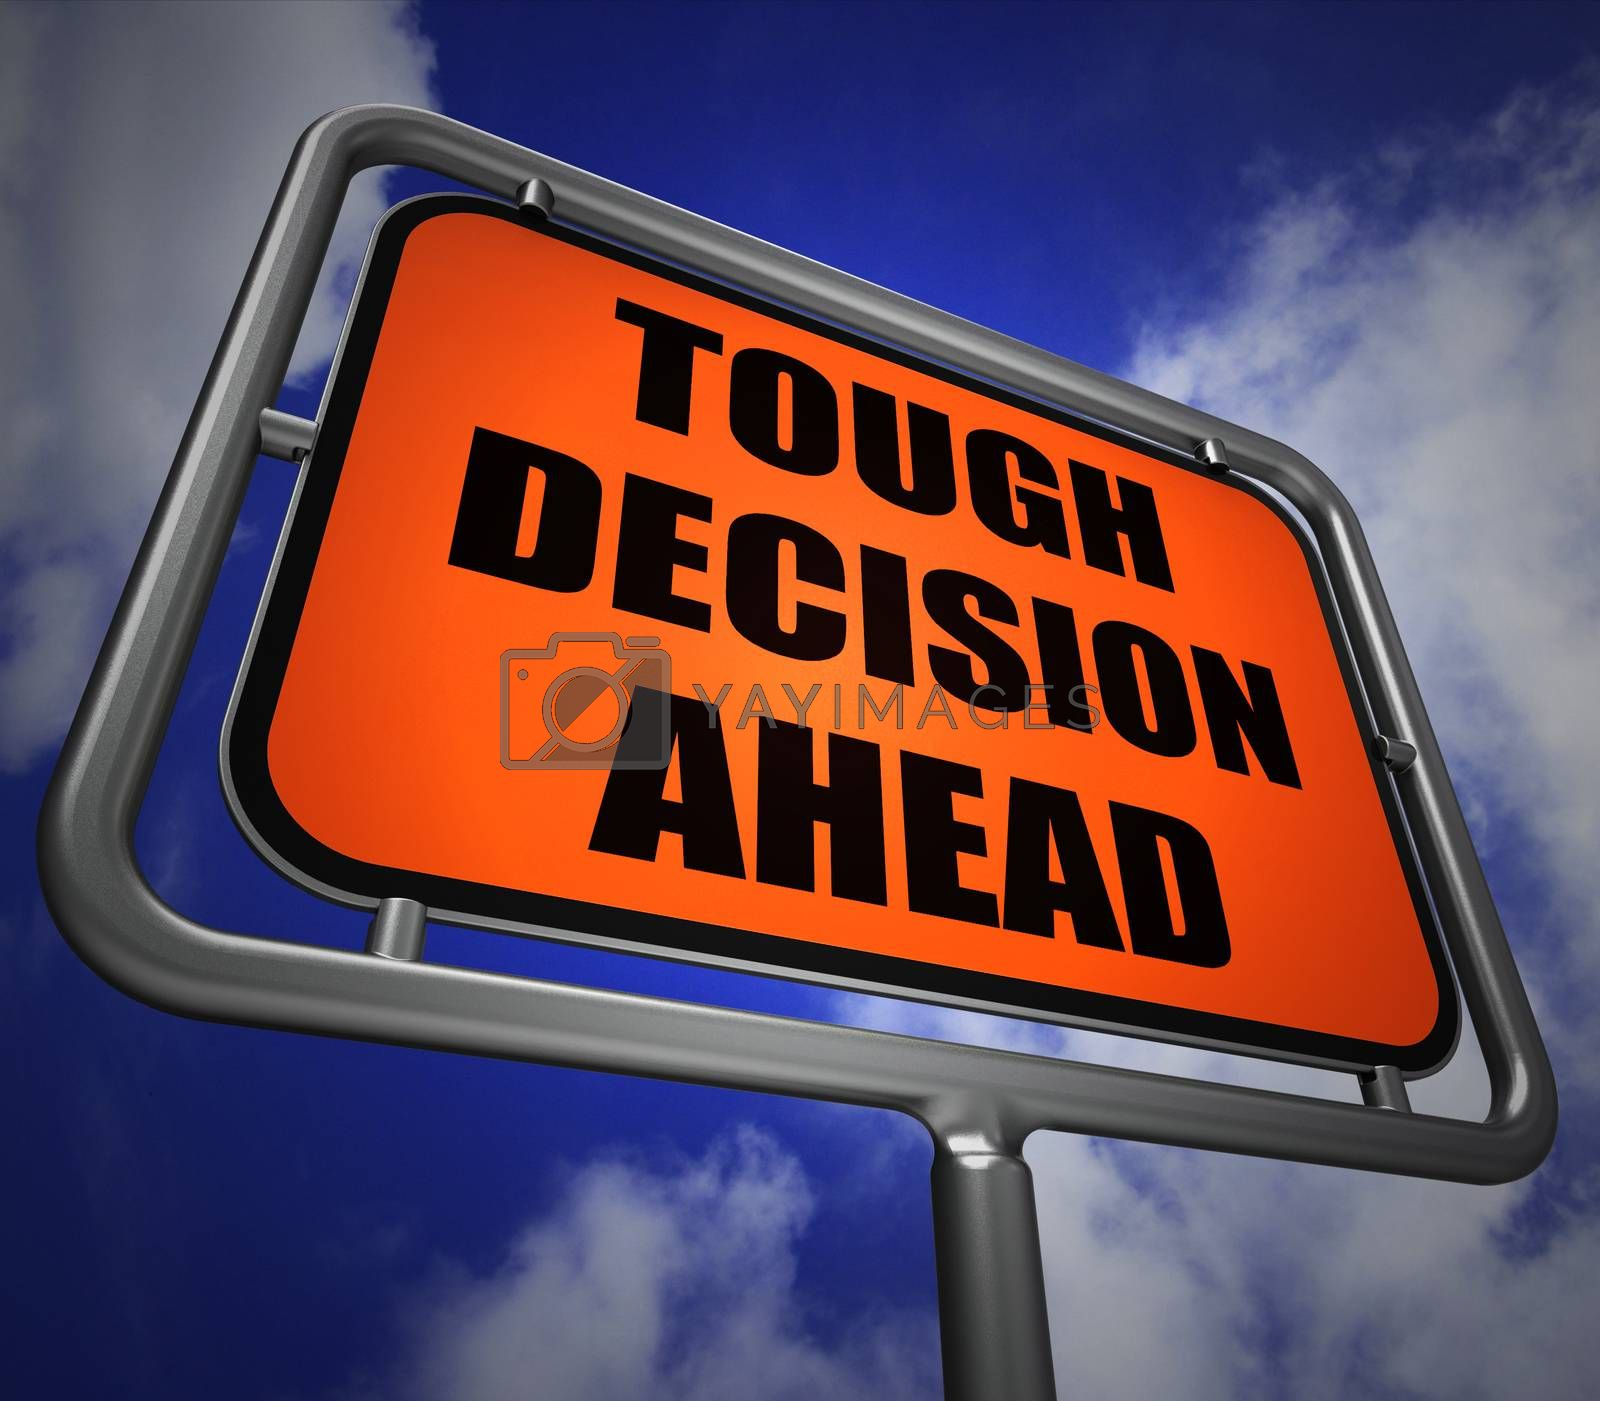 Tough Decision Ahead Signpost Means Uncertainty and Difficult Ch by stuartmiles